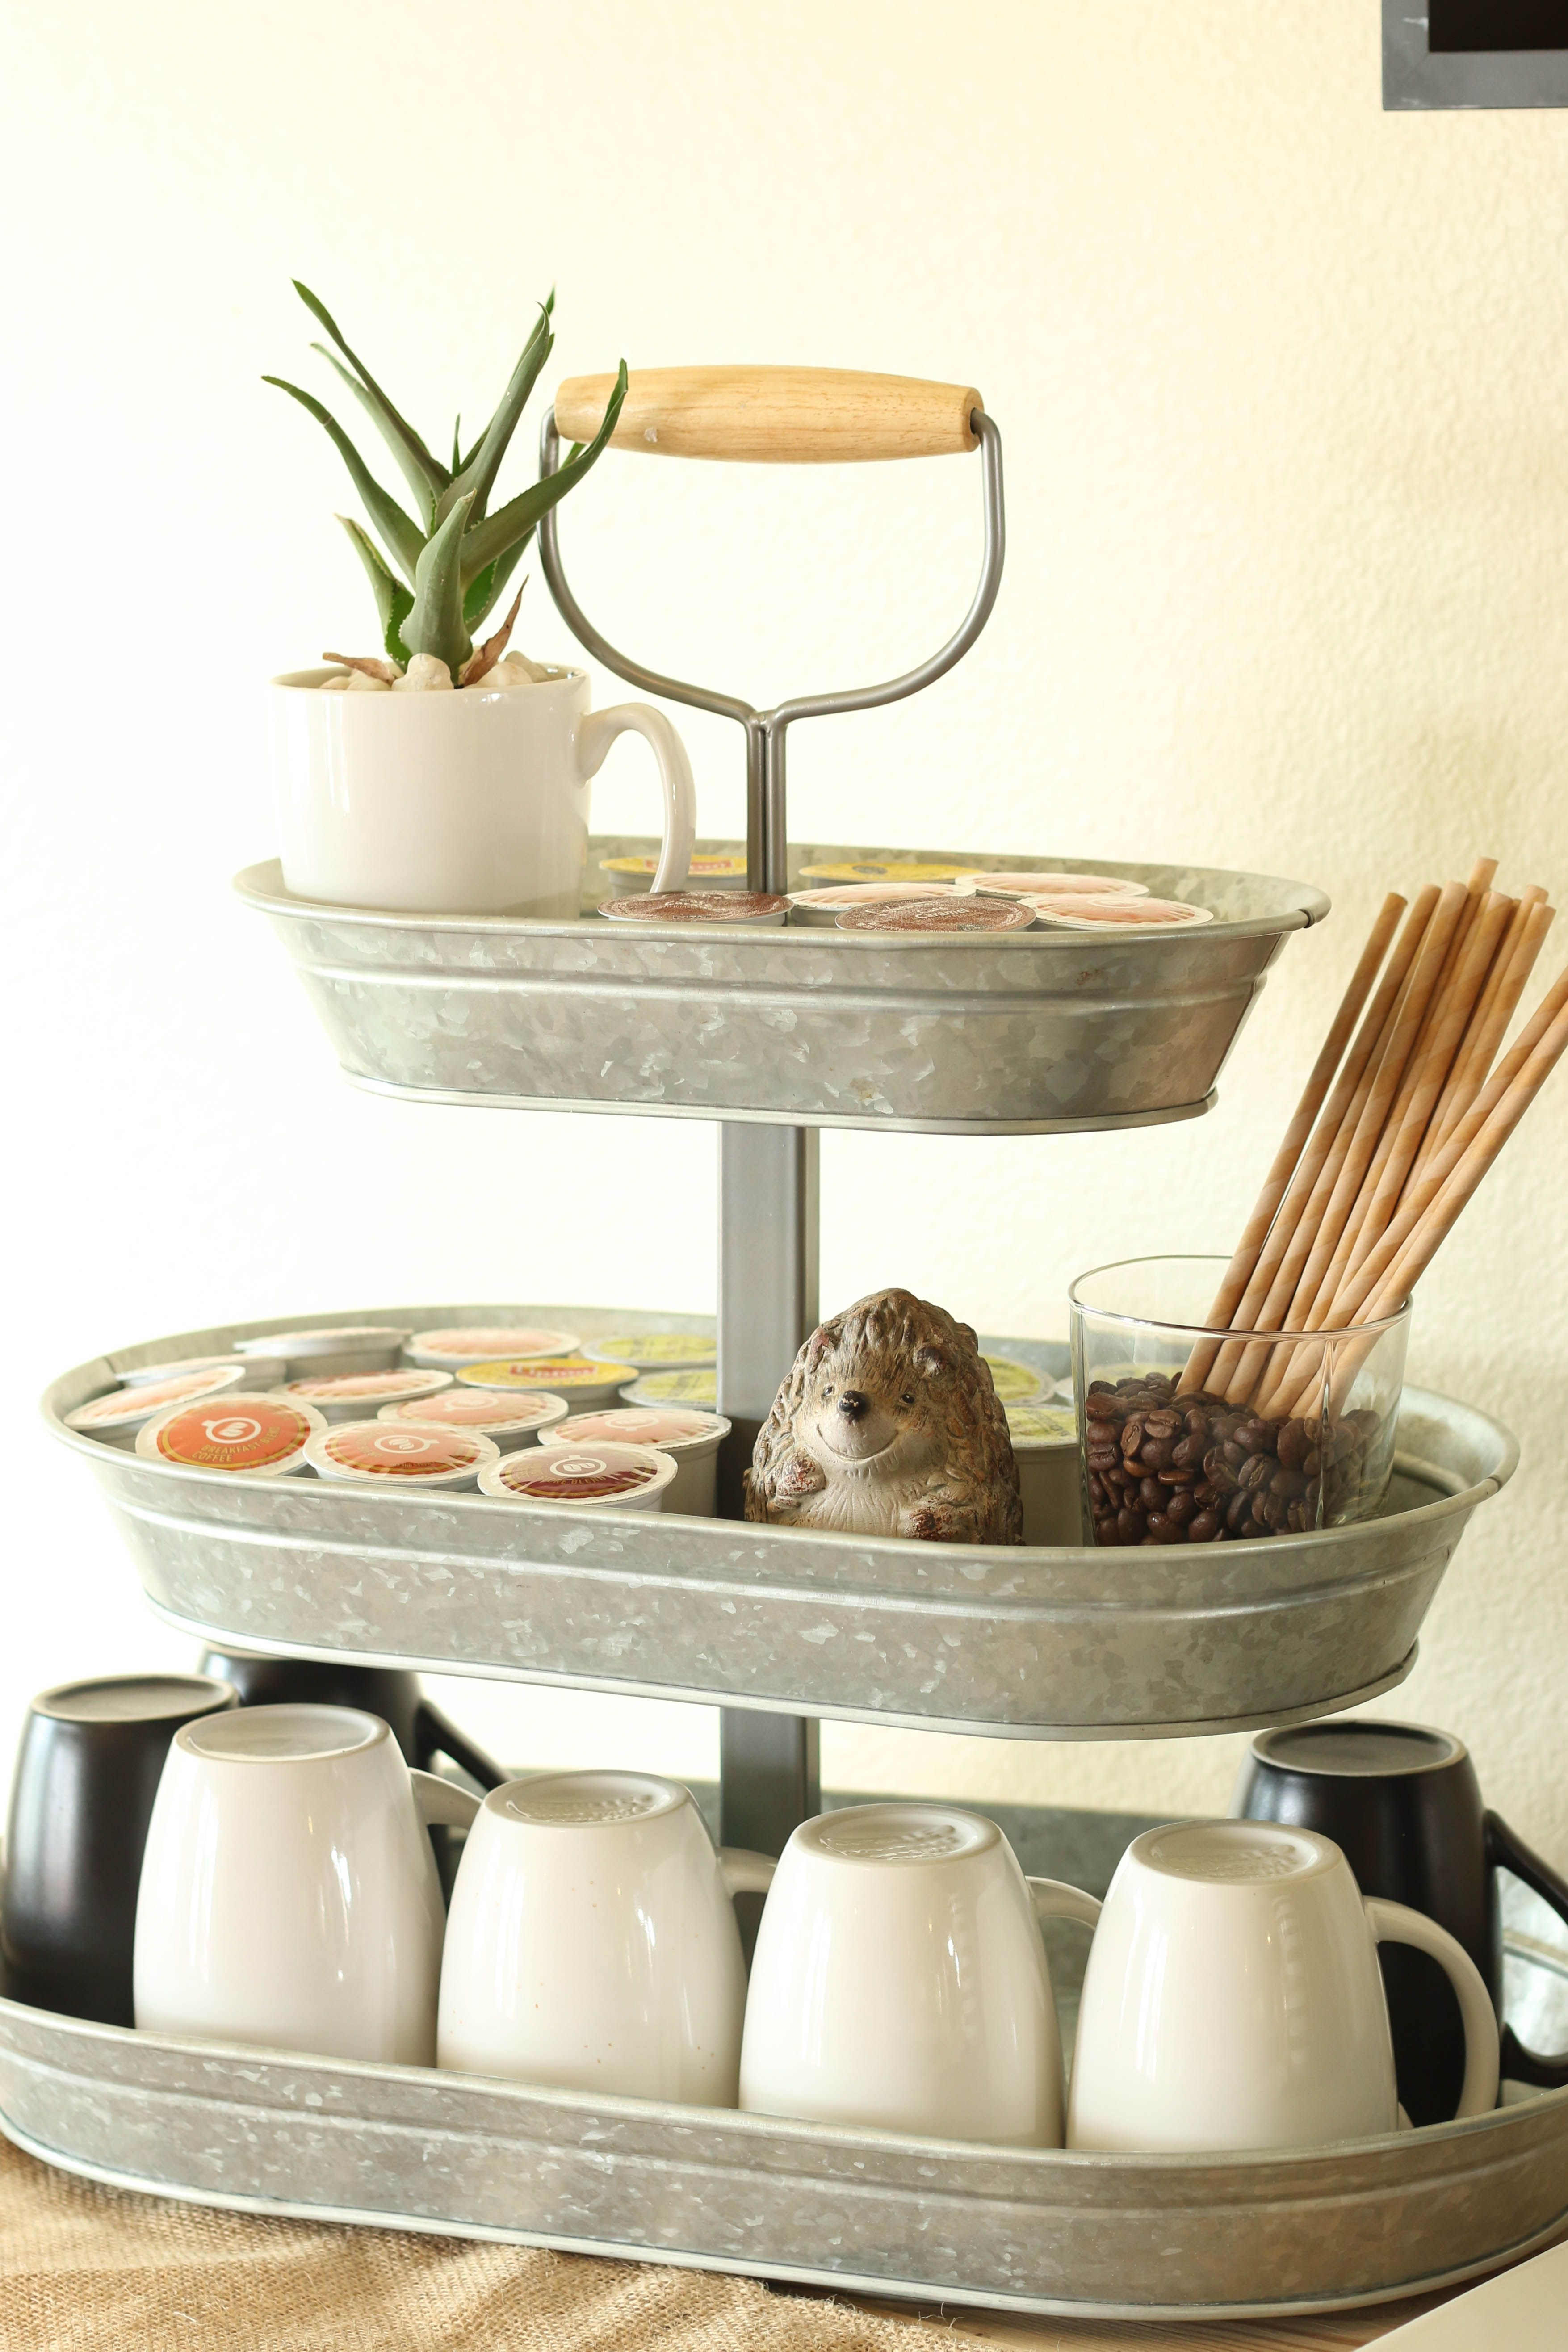 How To Make Your Own Creative Coffee Bar Buffet Of Beans Tiered Serving Trays Coffee Bar Home Coffee Bars In Kitchen